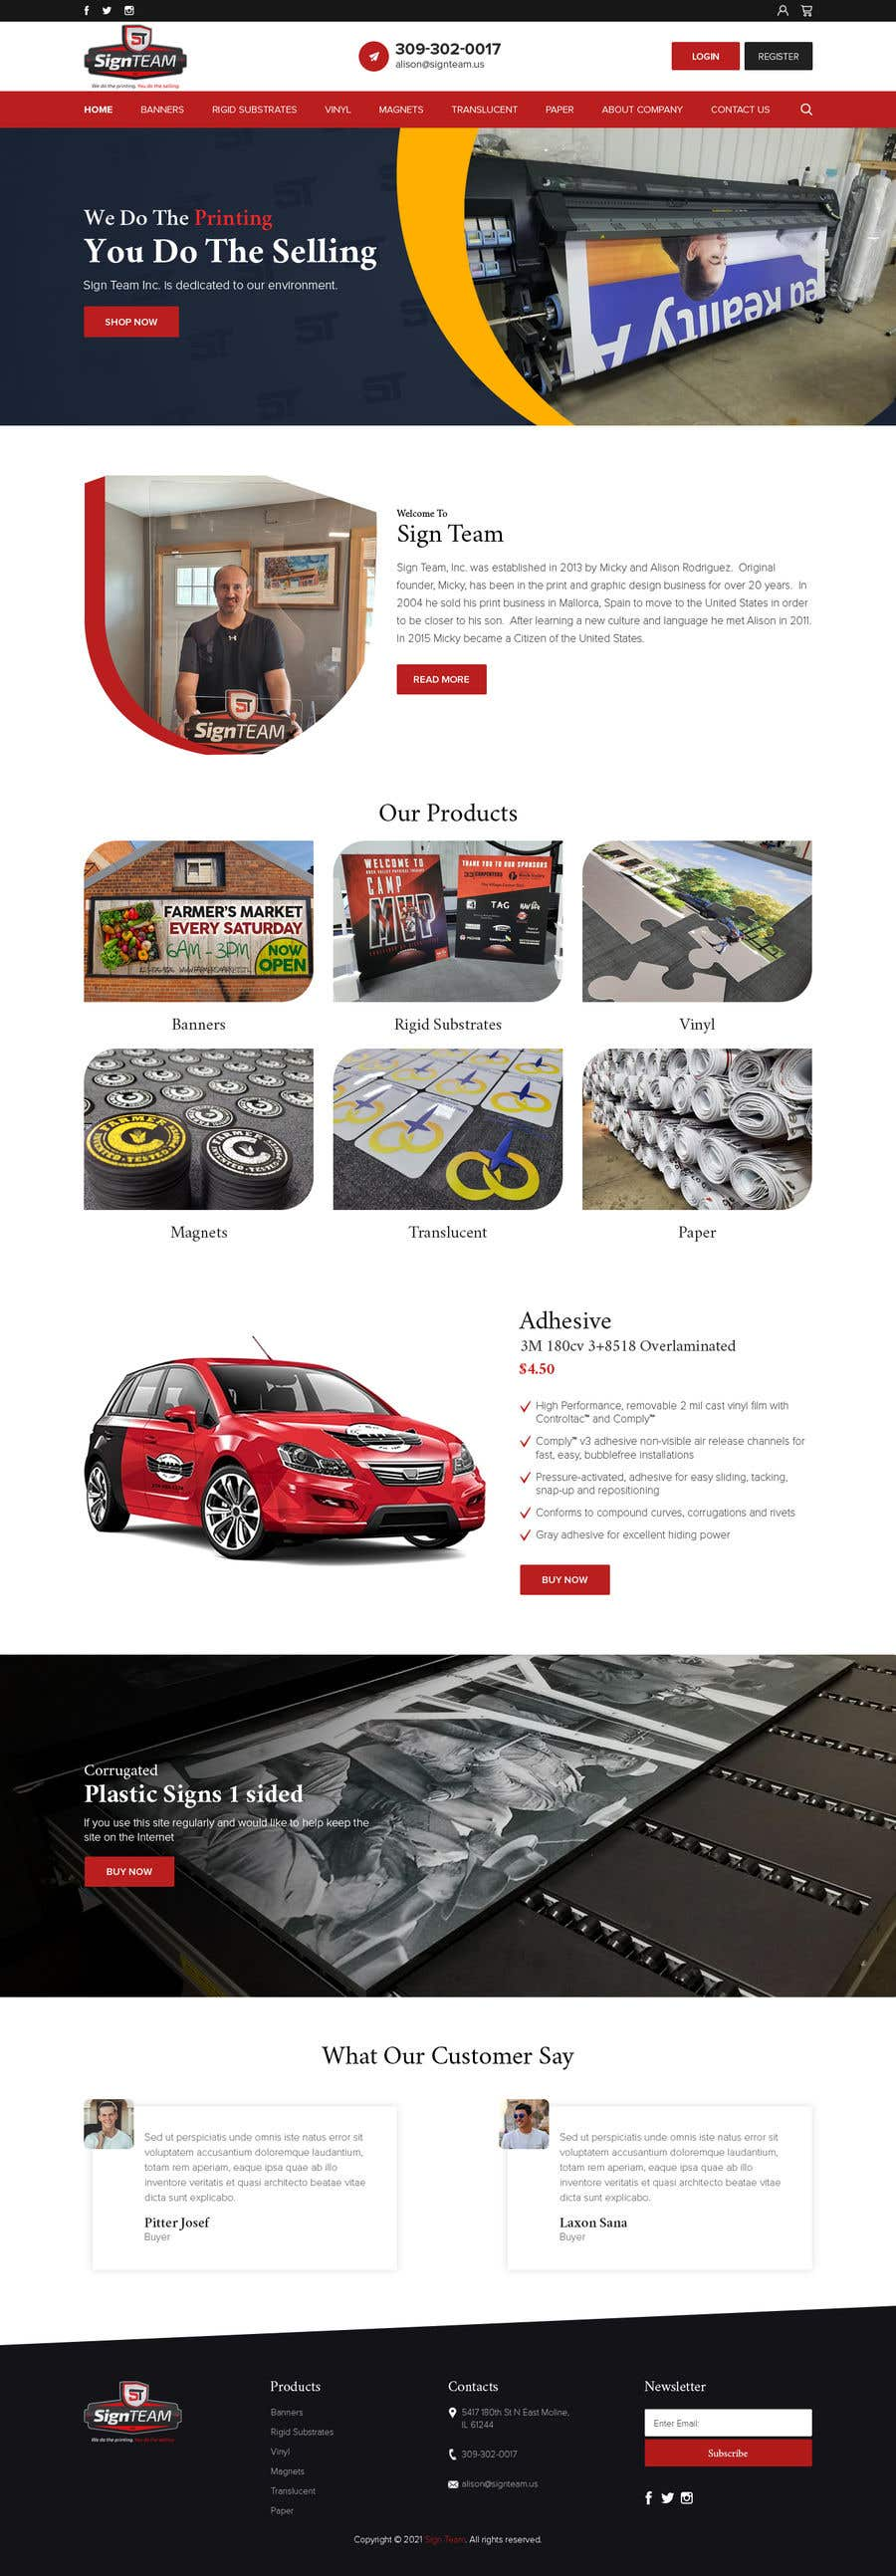 Konkurrenceindlæg #                                        21                                      for                                         Redesign front home page and product page